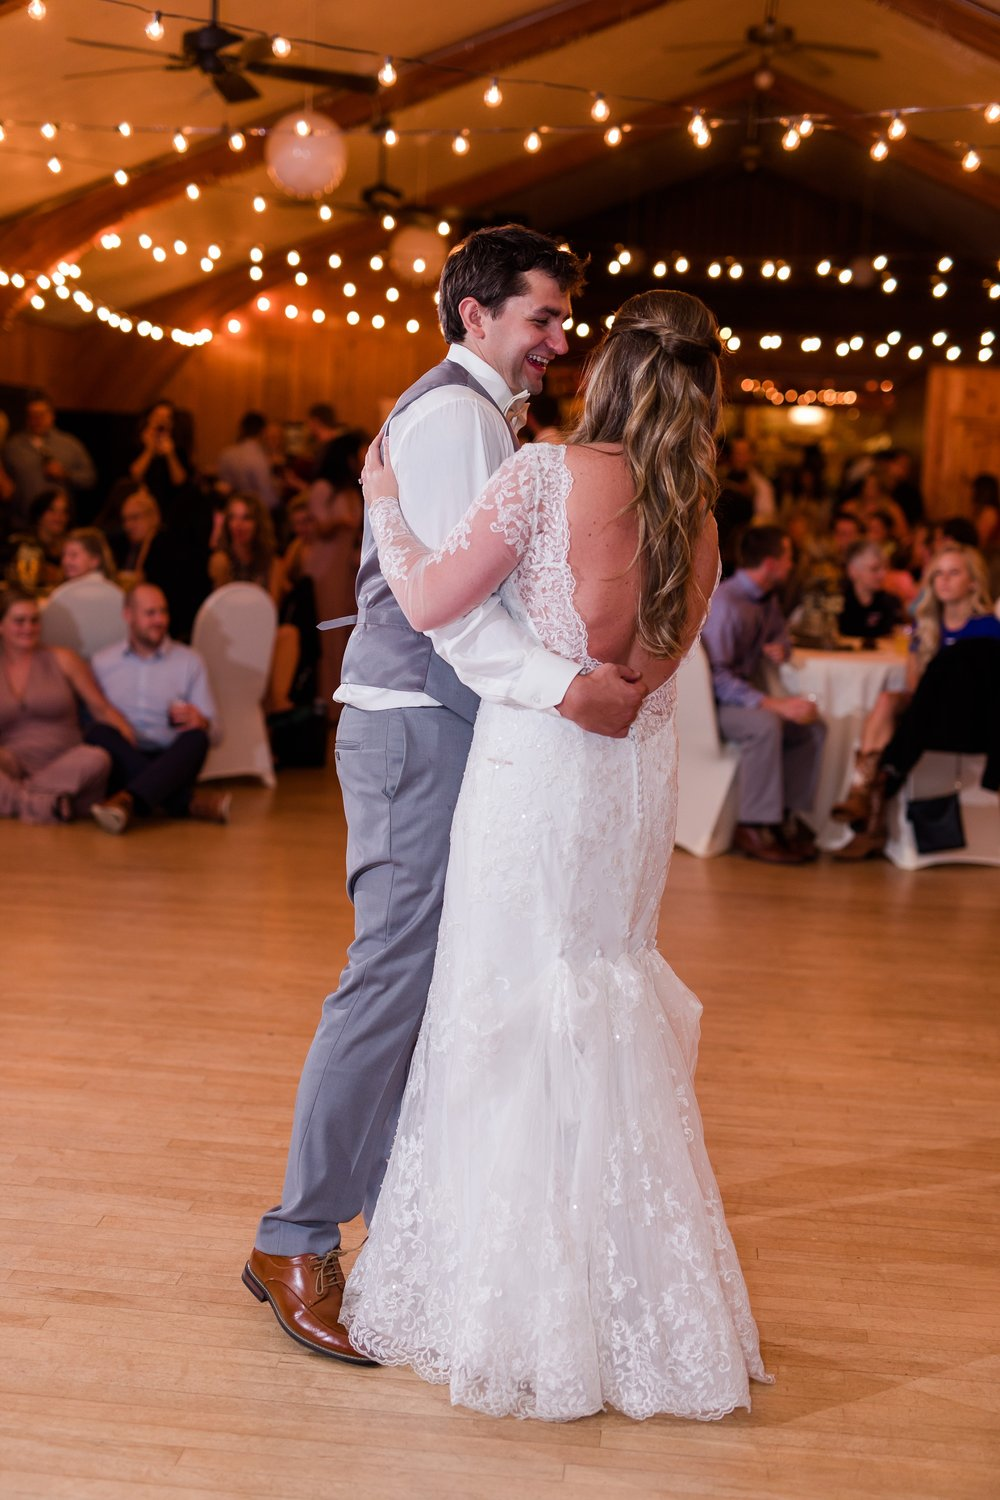 AmberLangerudPhotography_Fair Hills Resort Lakeside Wedding in Minnesota_3495.jpg